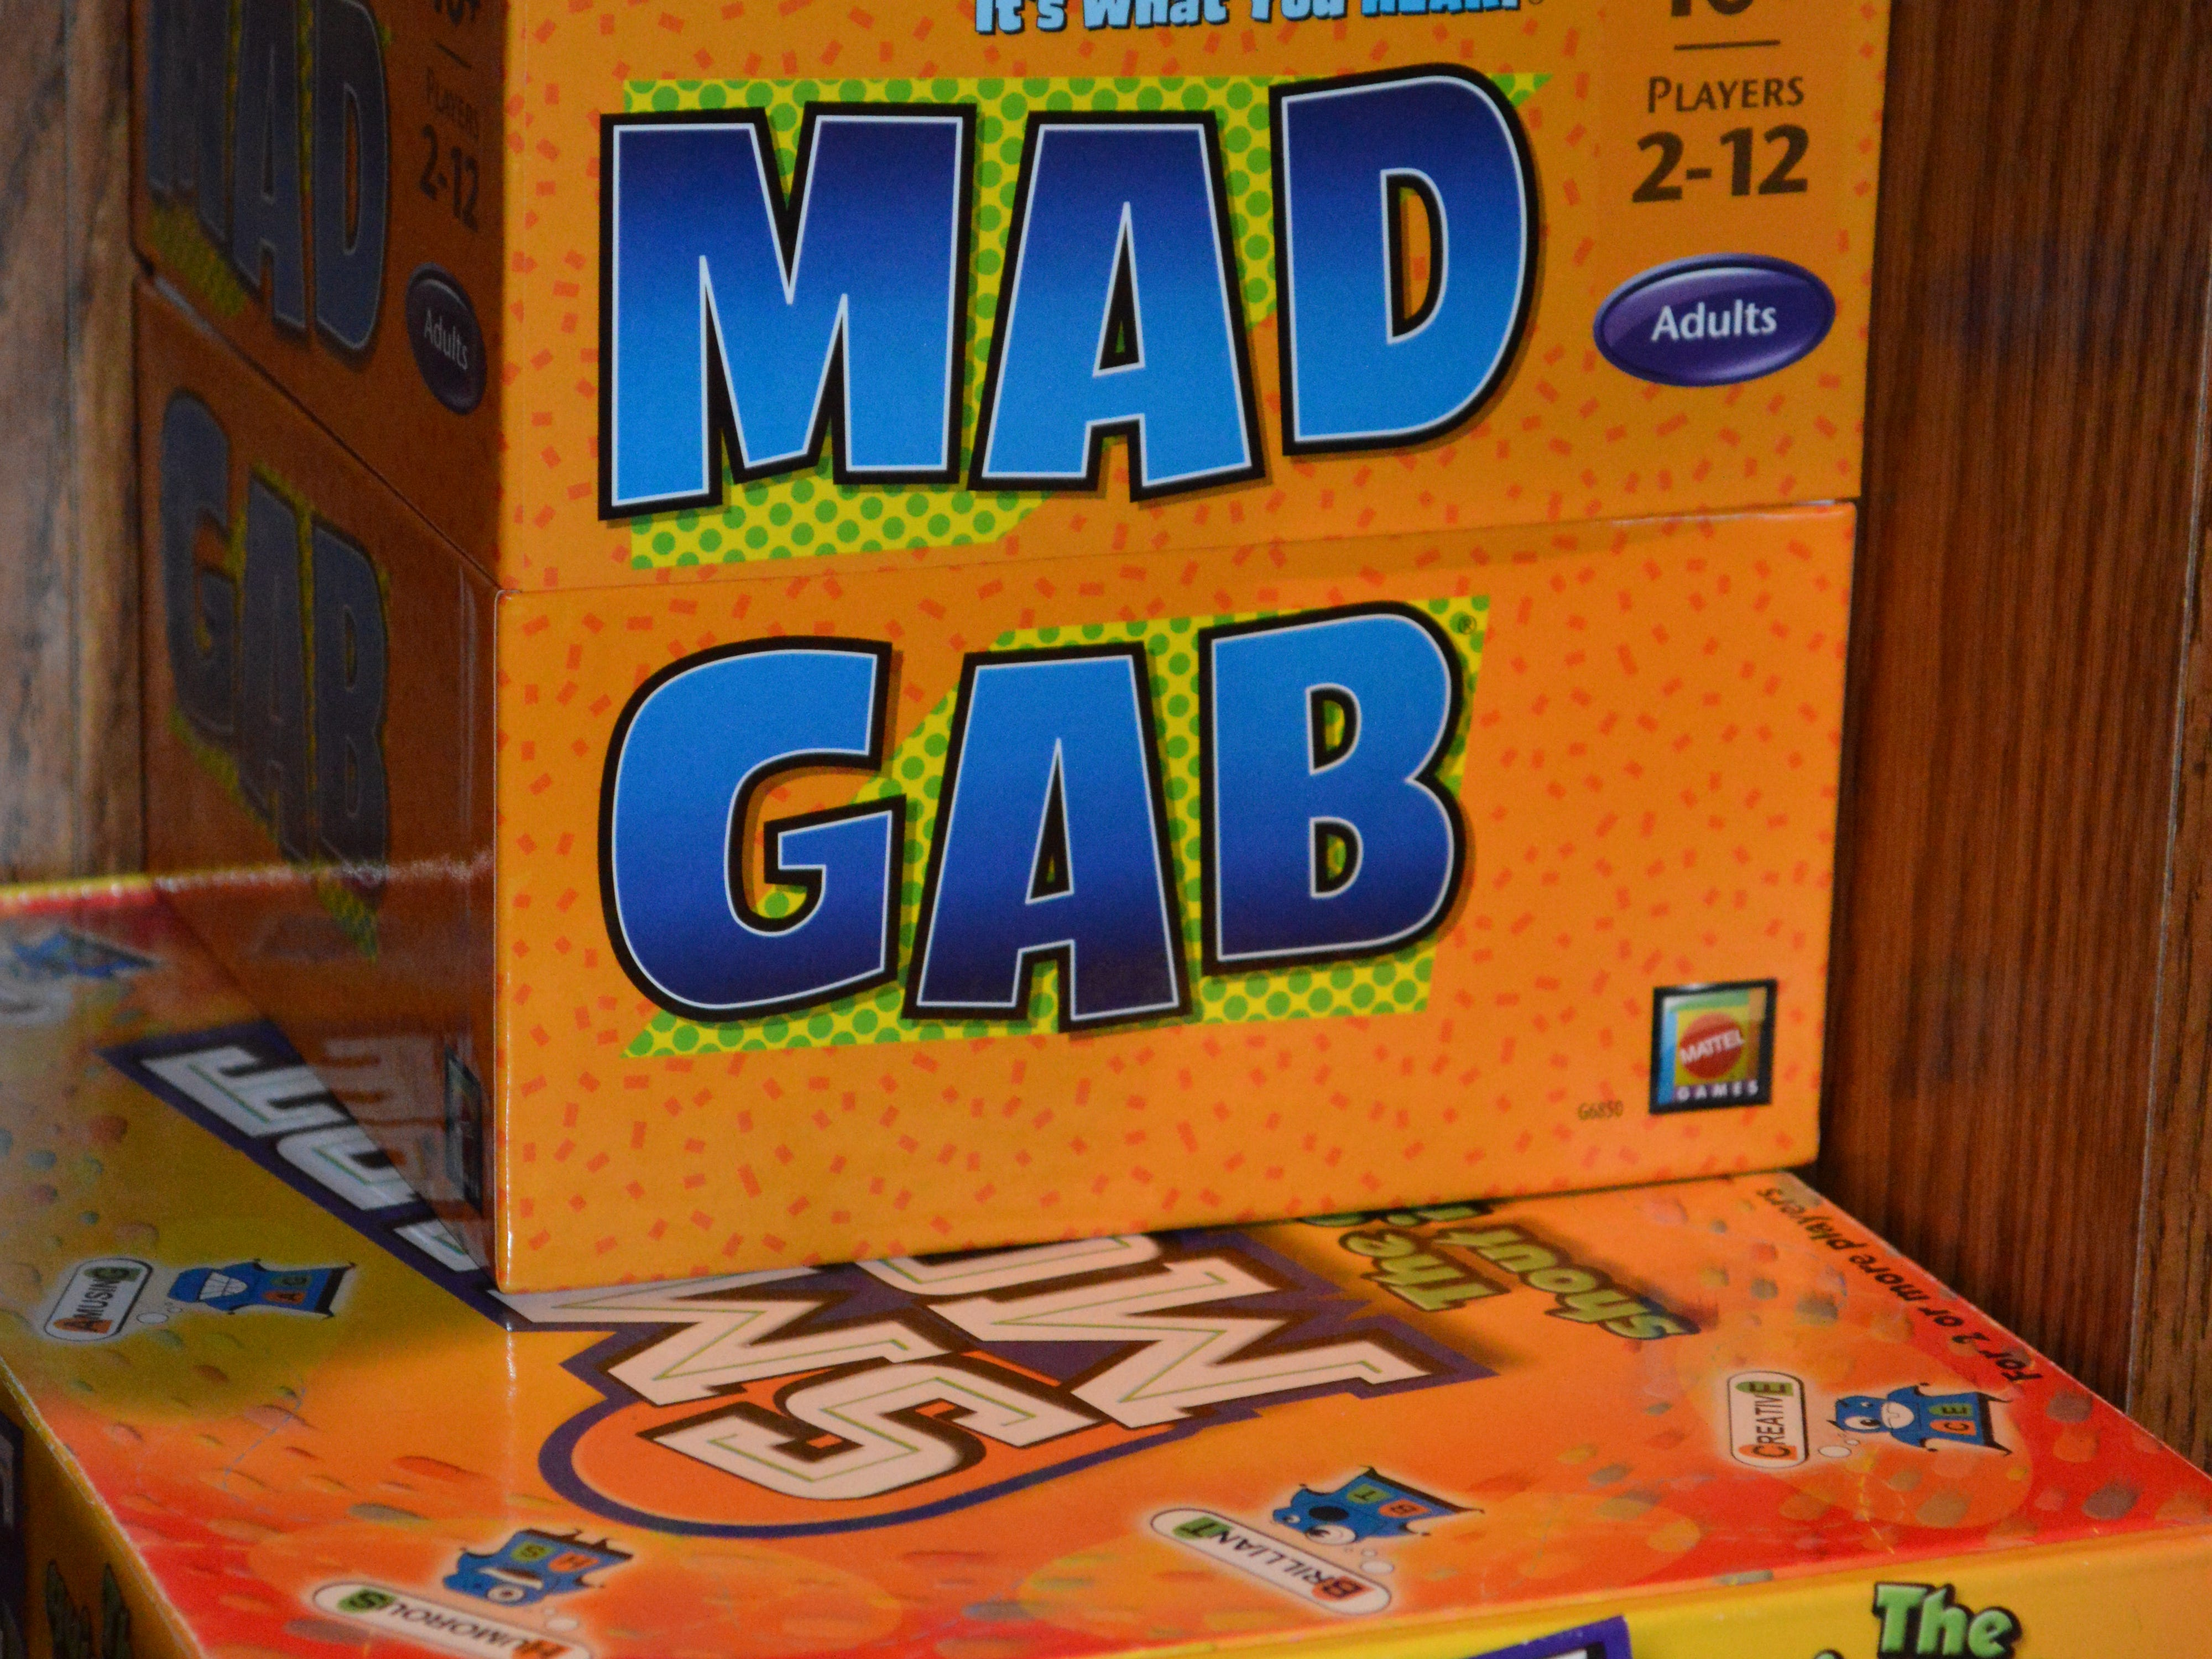 While Smart Mouth's members were brainstorming names for their band in Jeff Jost's basement, vocalist Austin Riche saw the board game Smart Mouth and suggested it for their name. The band agreed on it, unanimously.